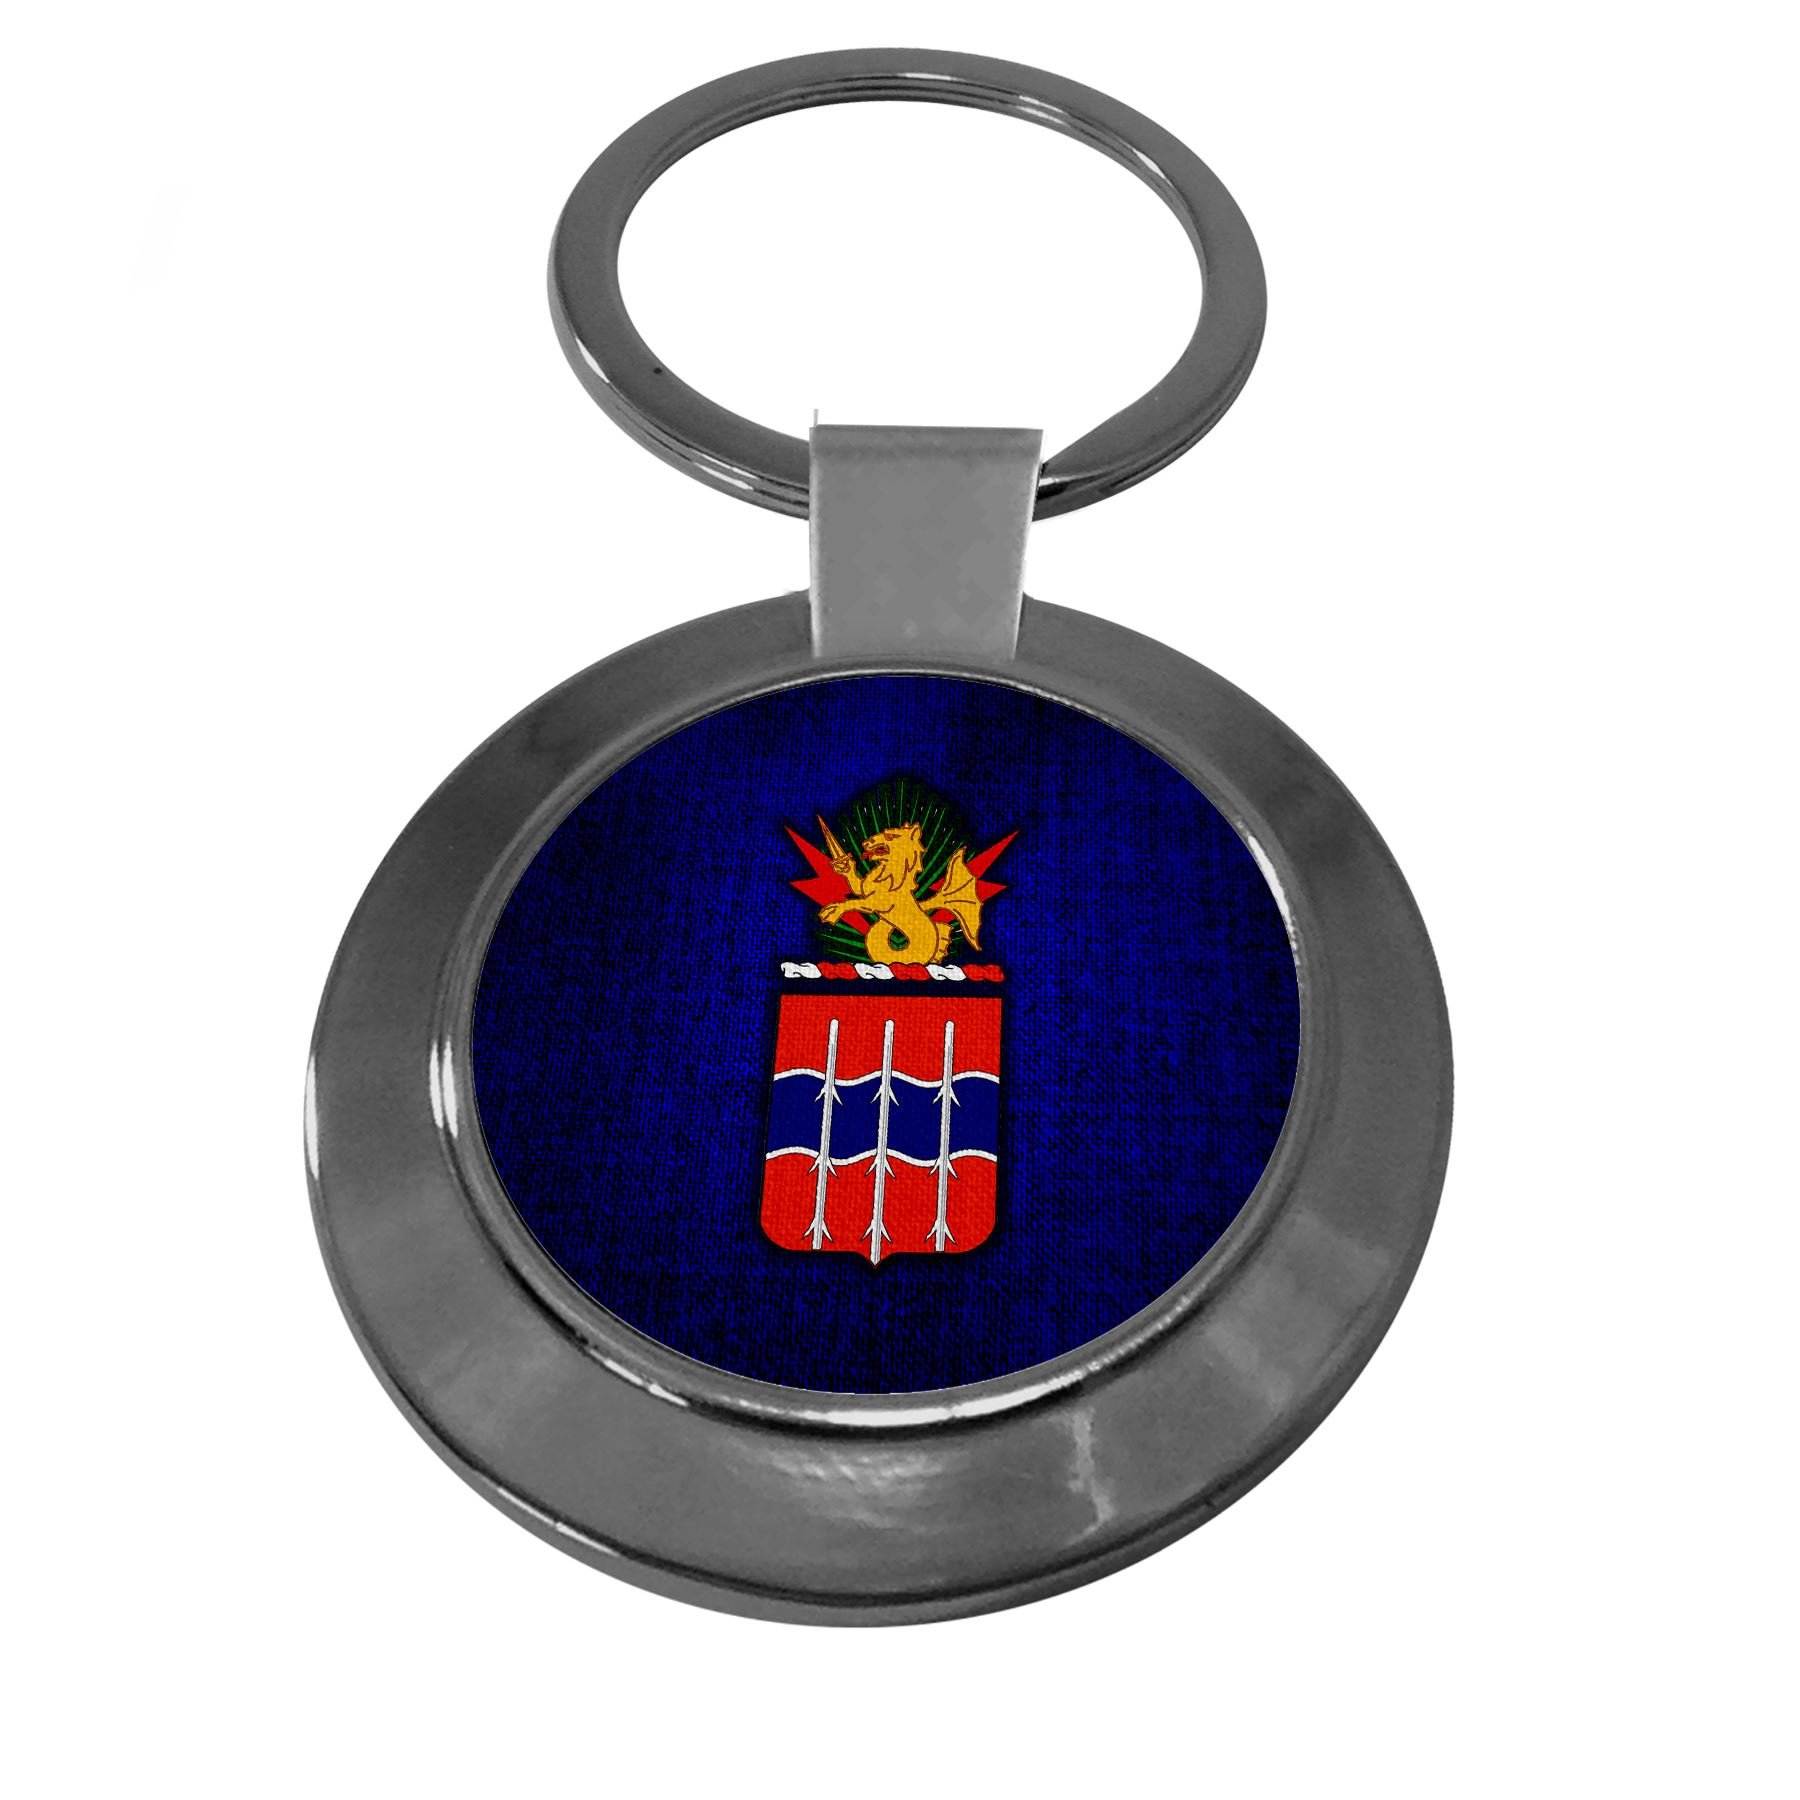 Premium Key Ring with U.S. Army 16th Signal Battalion, coat of arms